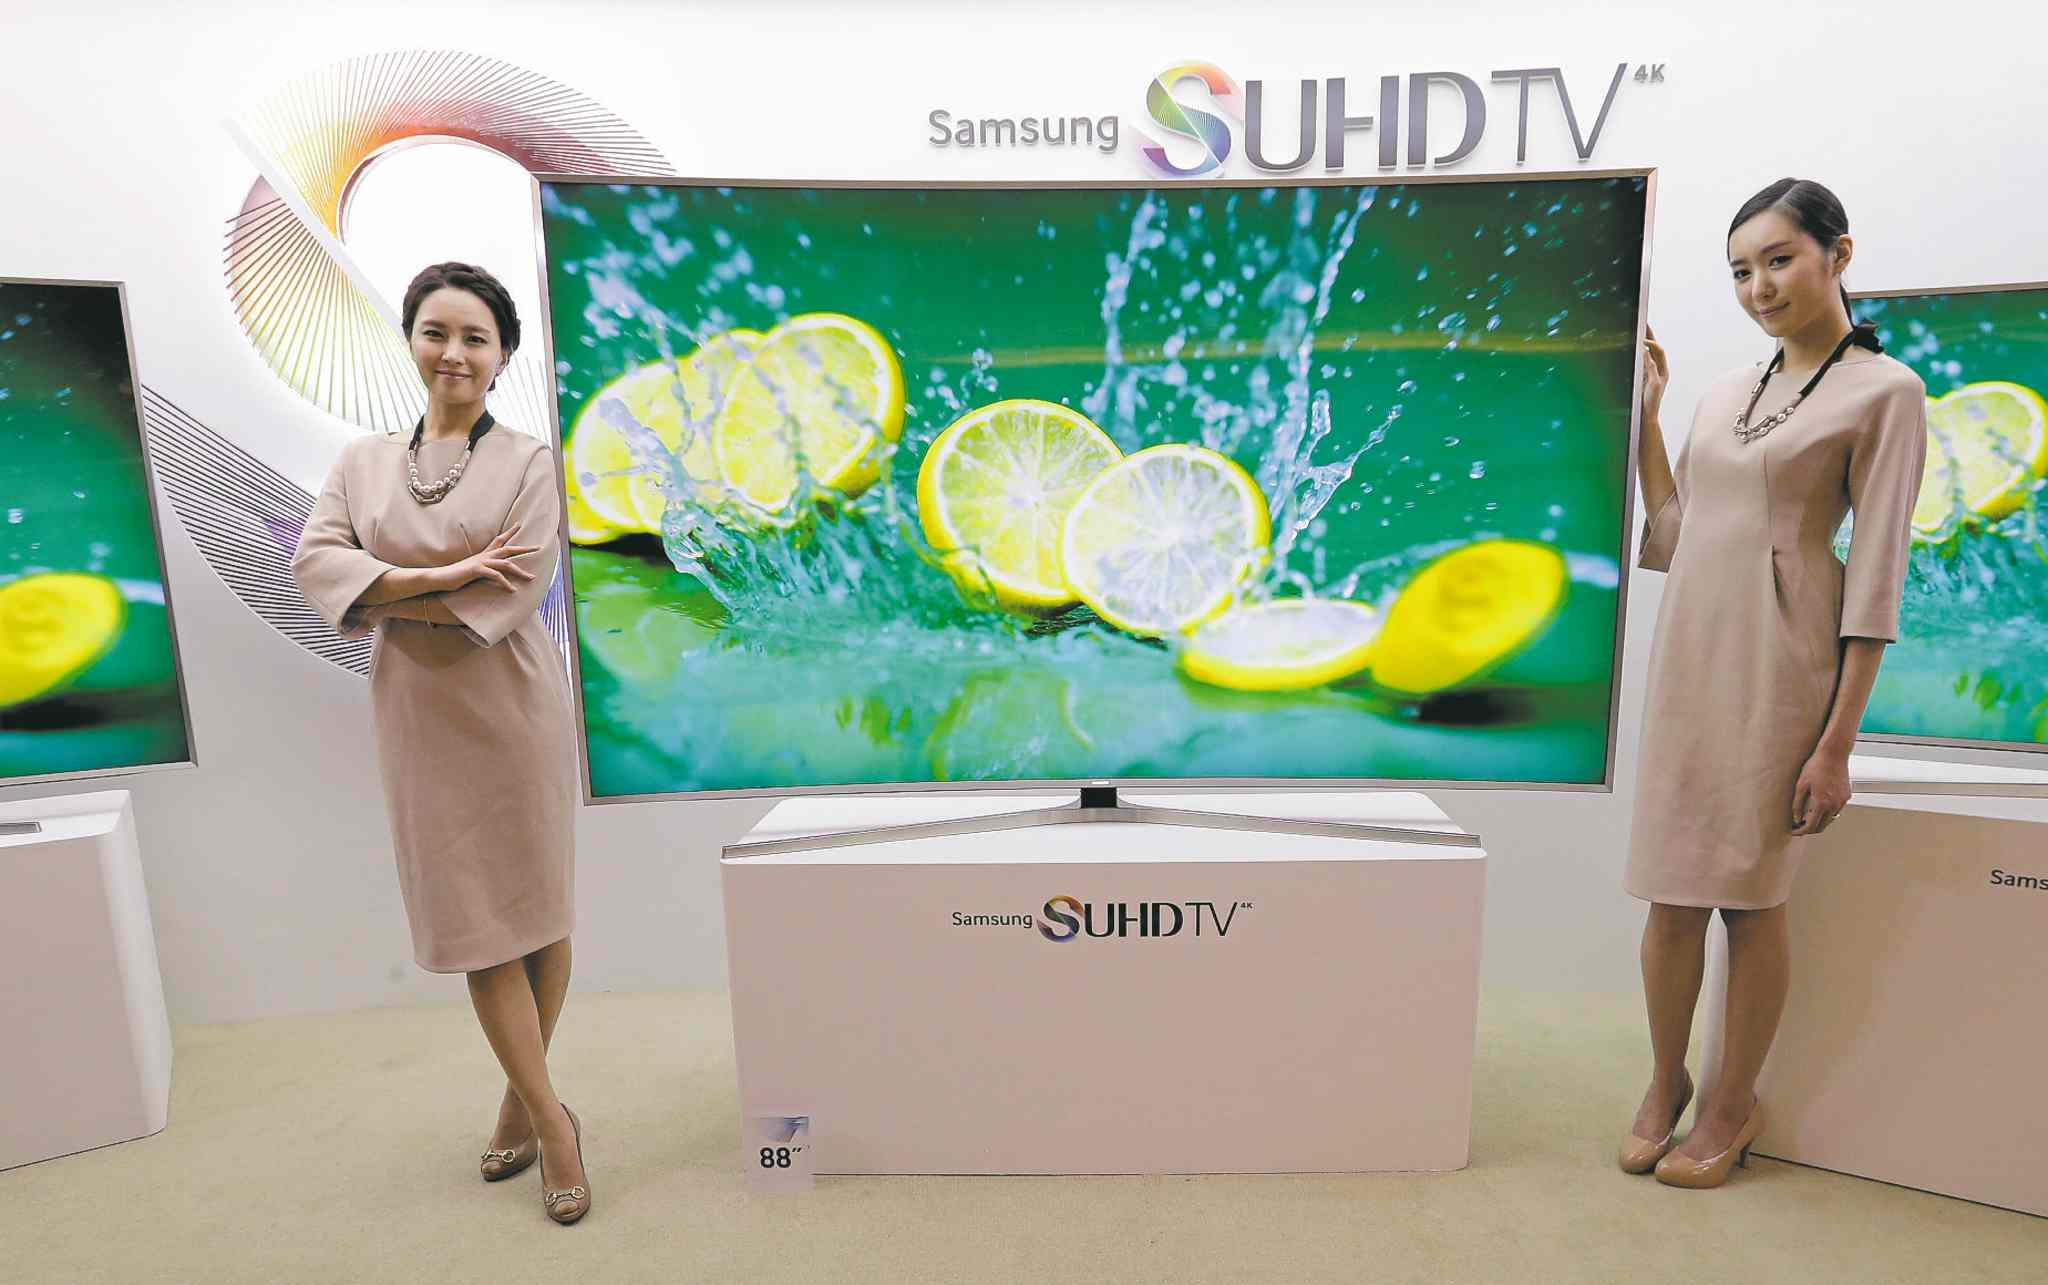 Models pose with a Samsung Electronics SUHD 4K smart TV in Seoul, South Korea. Samsung says voice-recognition technology in its Internet-connected TVs can capture and transmit nearby conversations.